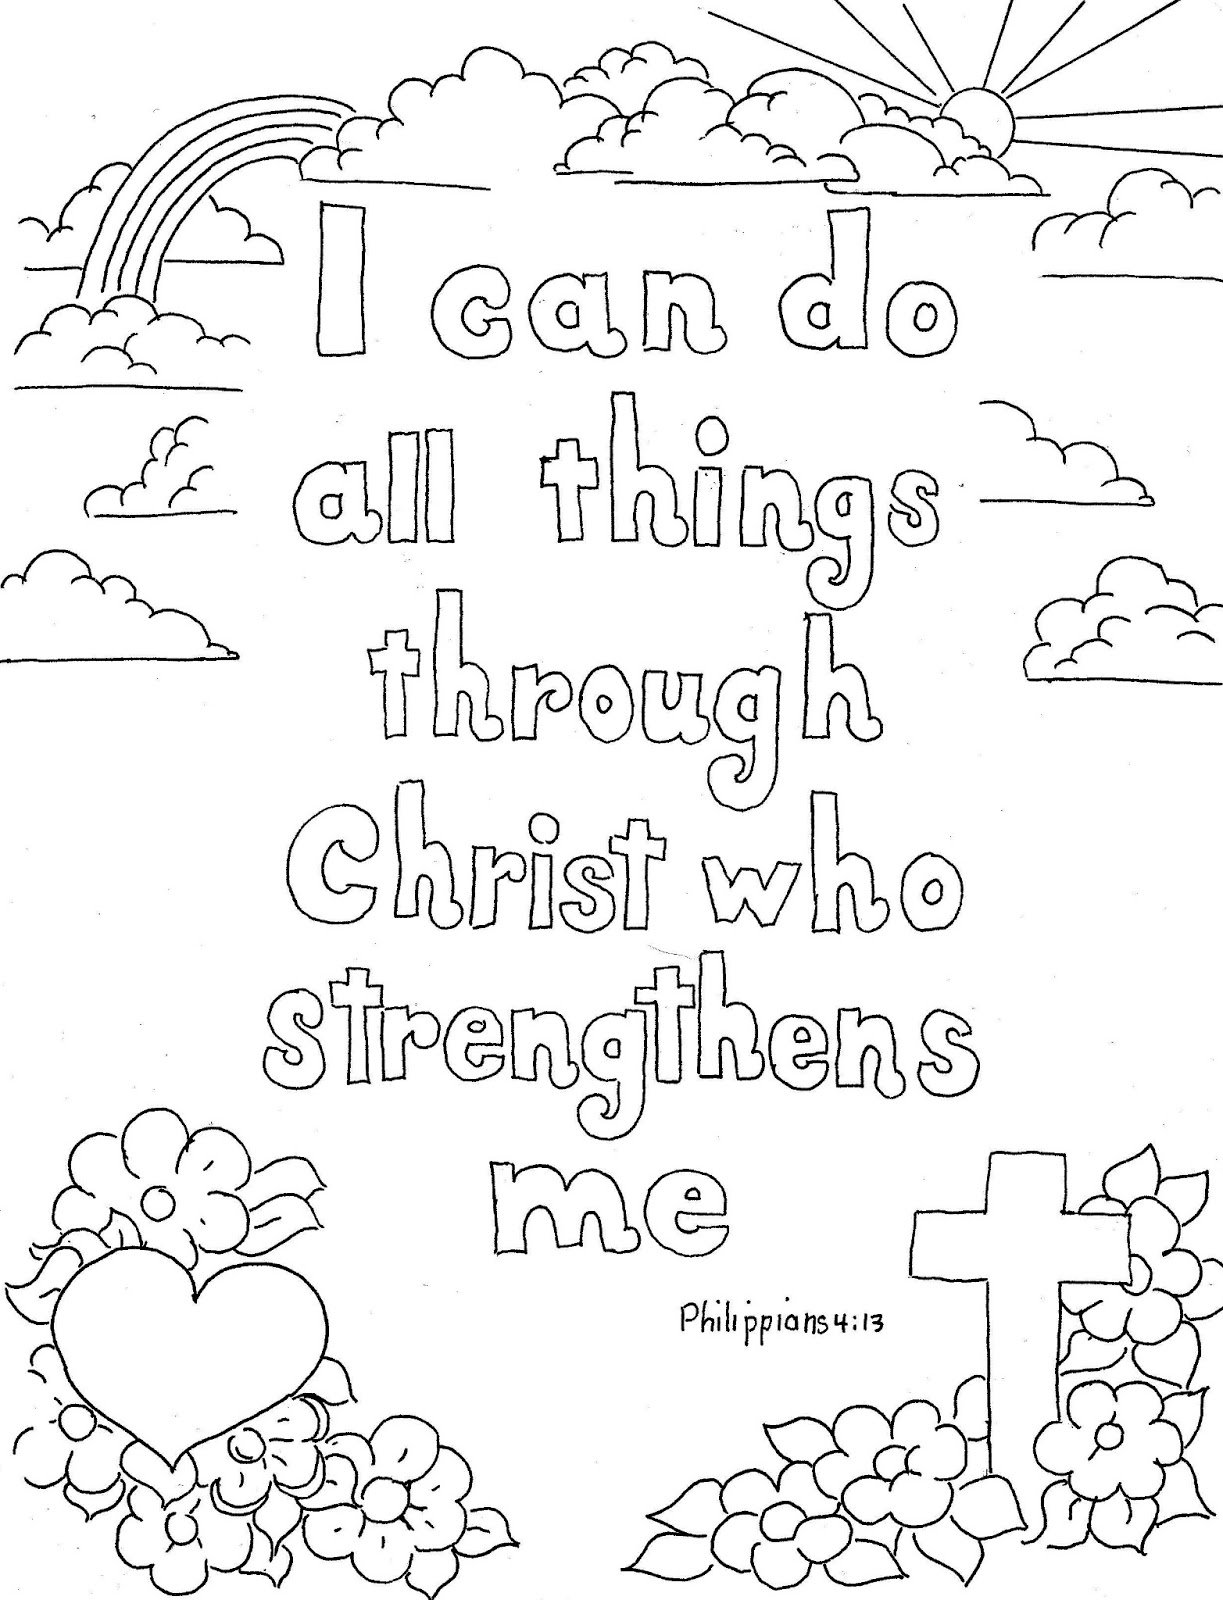 gates of heaven Colouring Pages | Bible coloring pages, Bible ... | 1600x1223